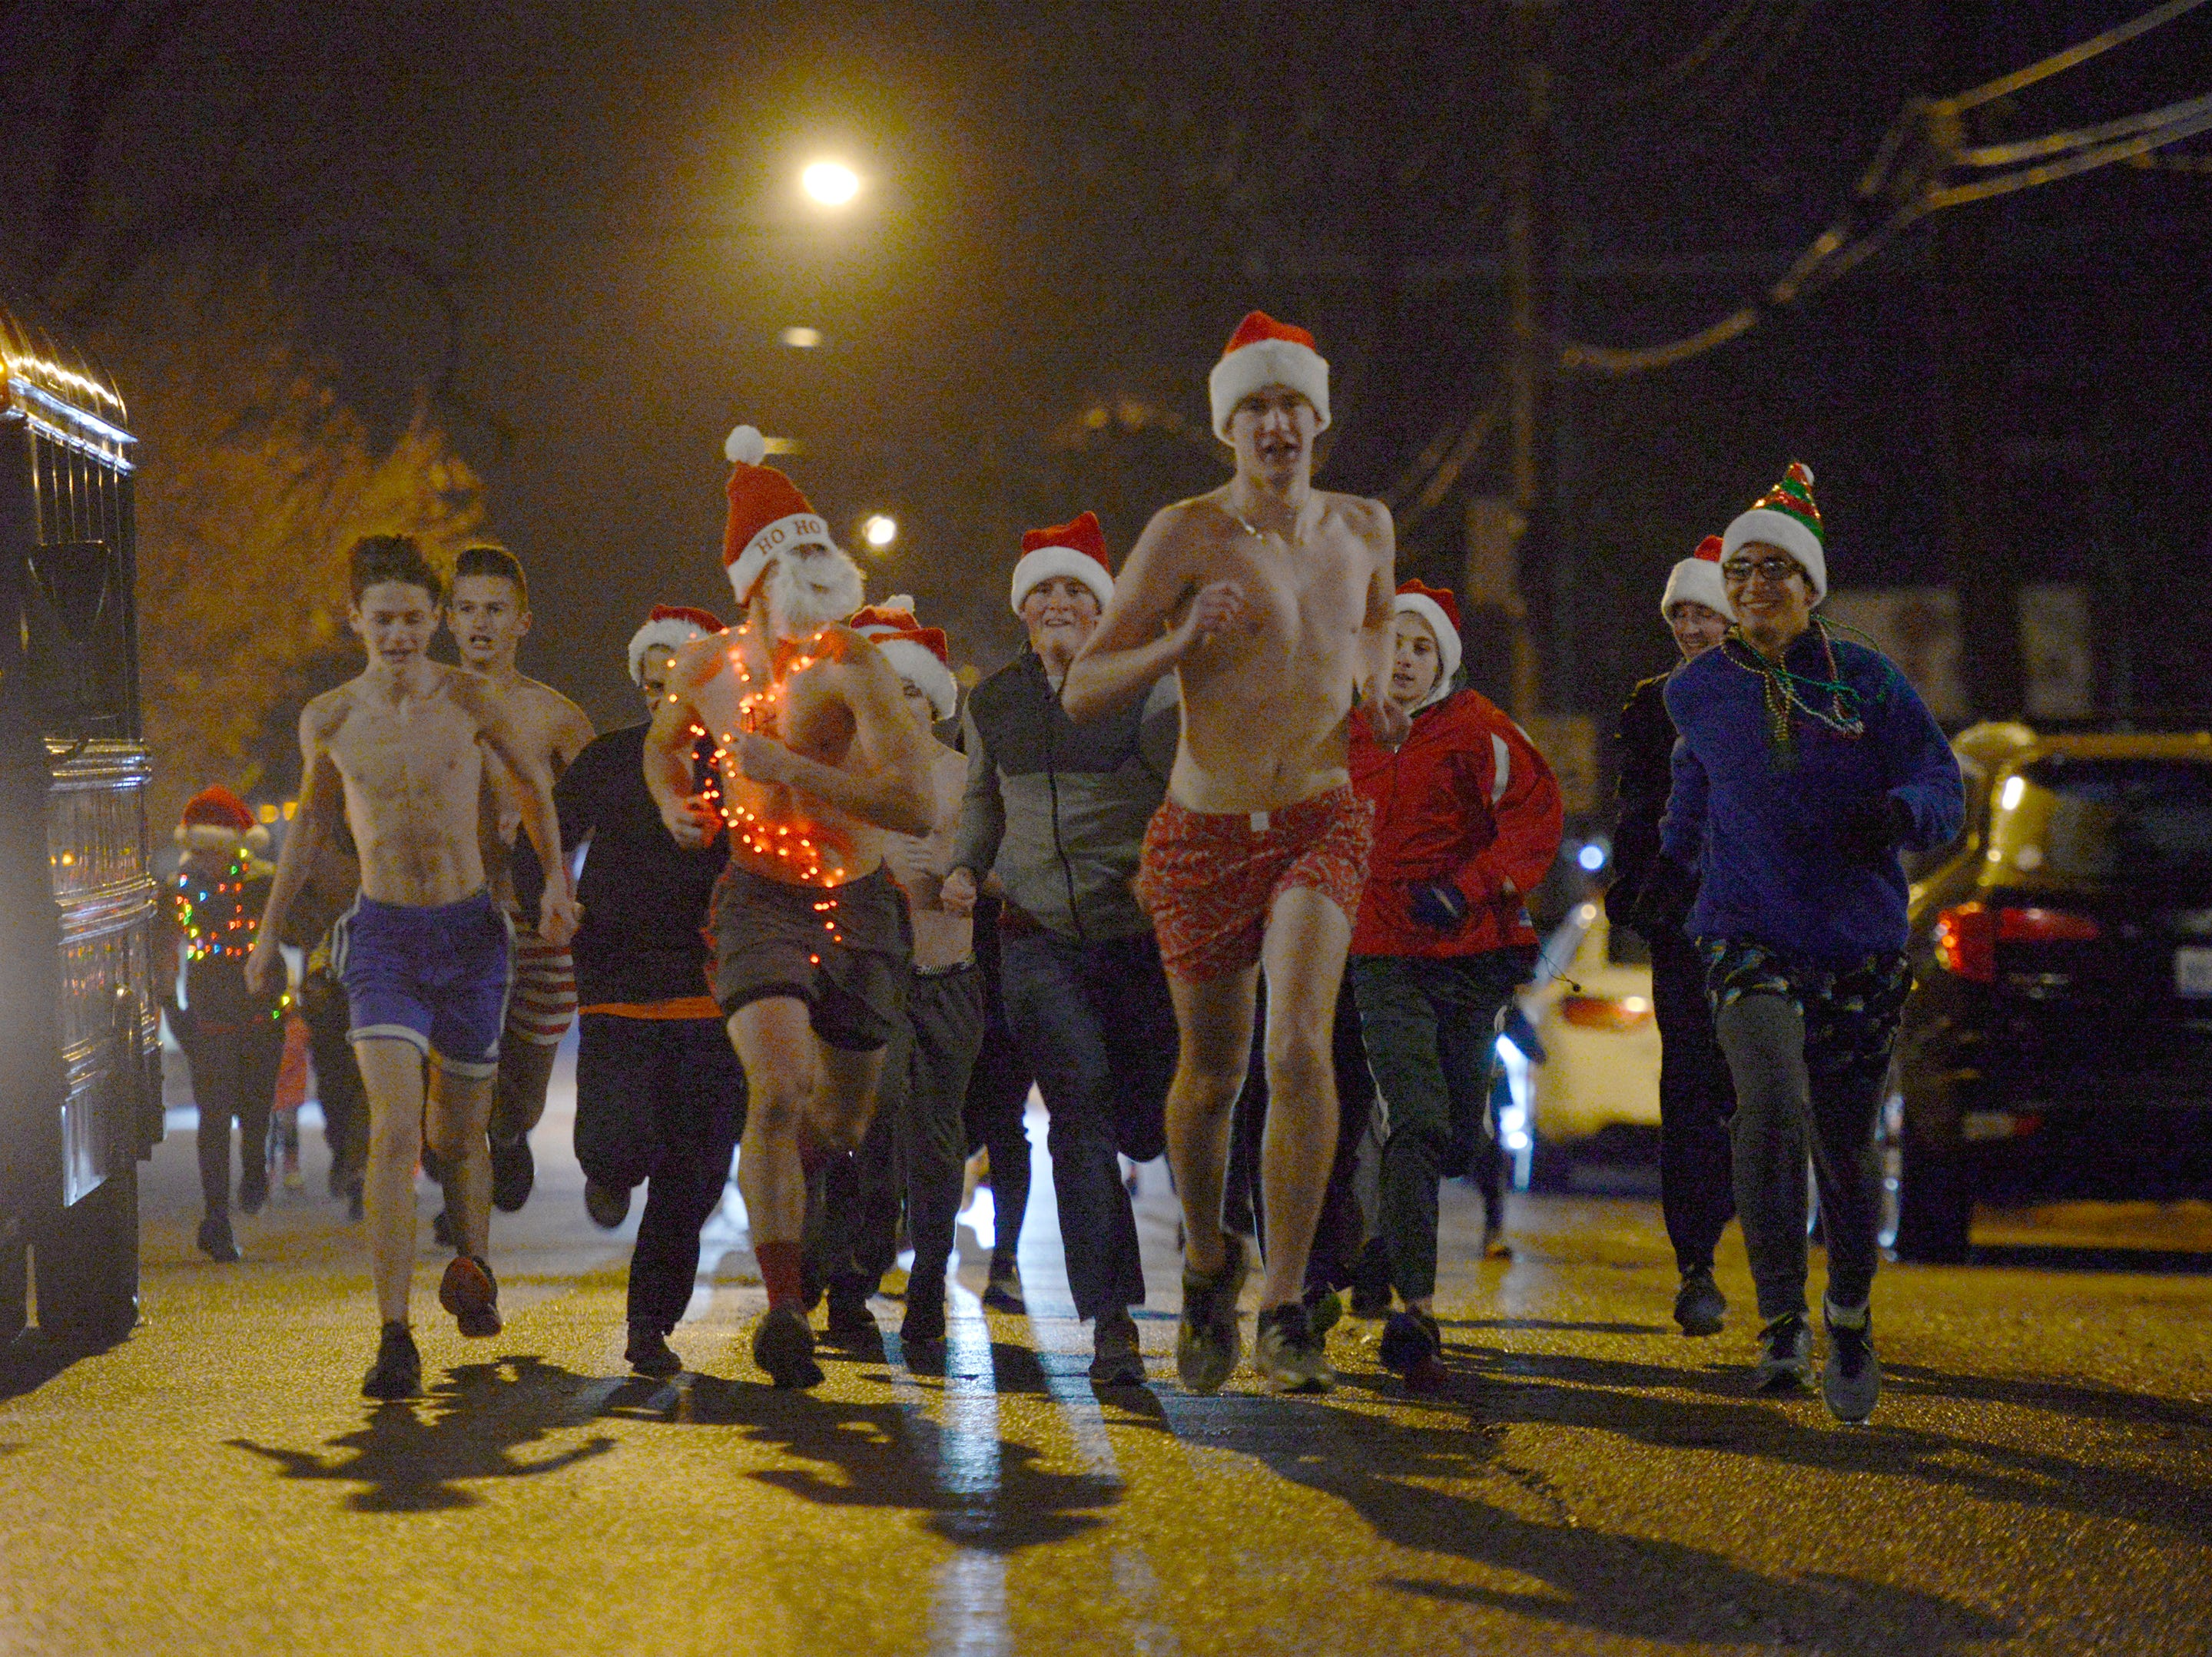 Runners in the Cool Yule fun run just before the start of the Lighted Parade Dec. 1, 2018.